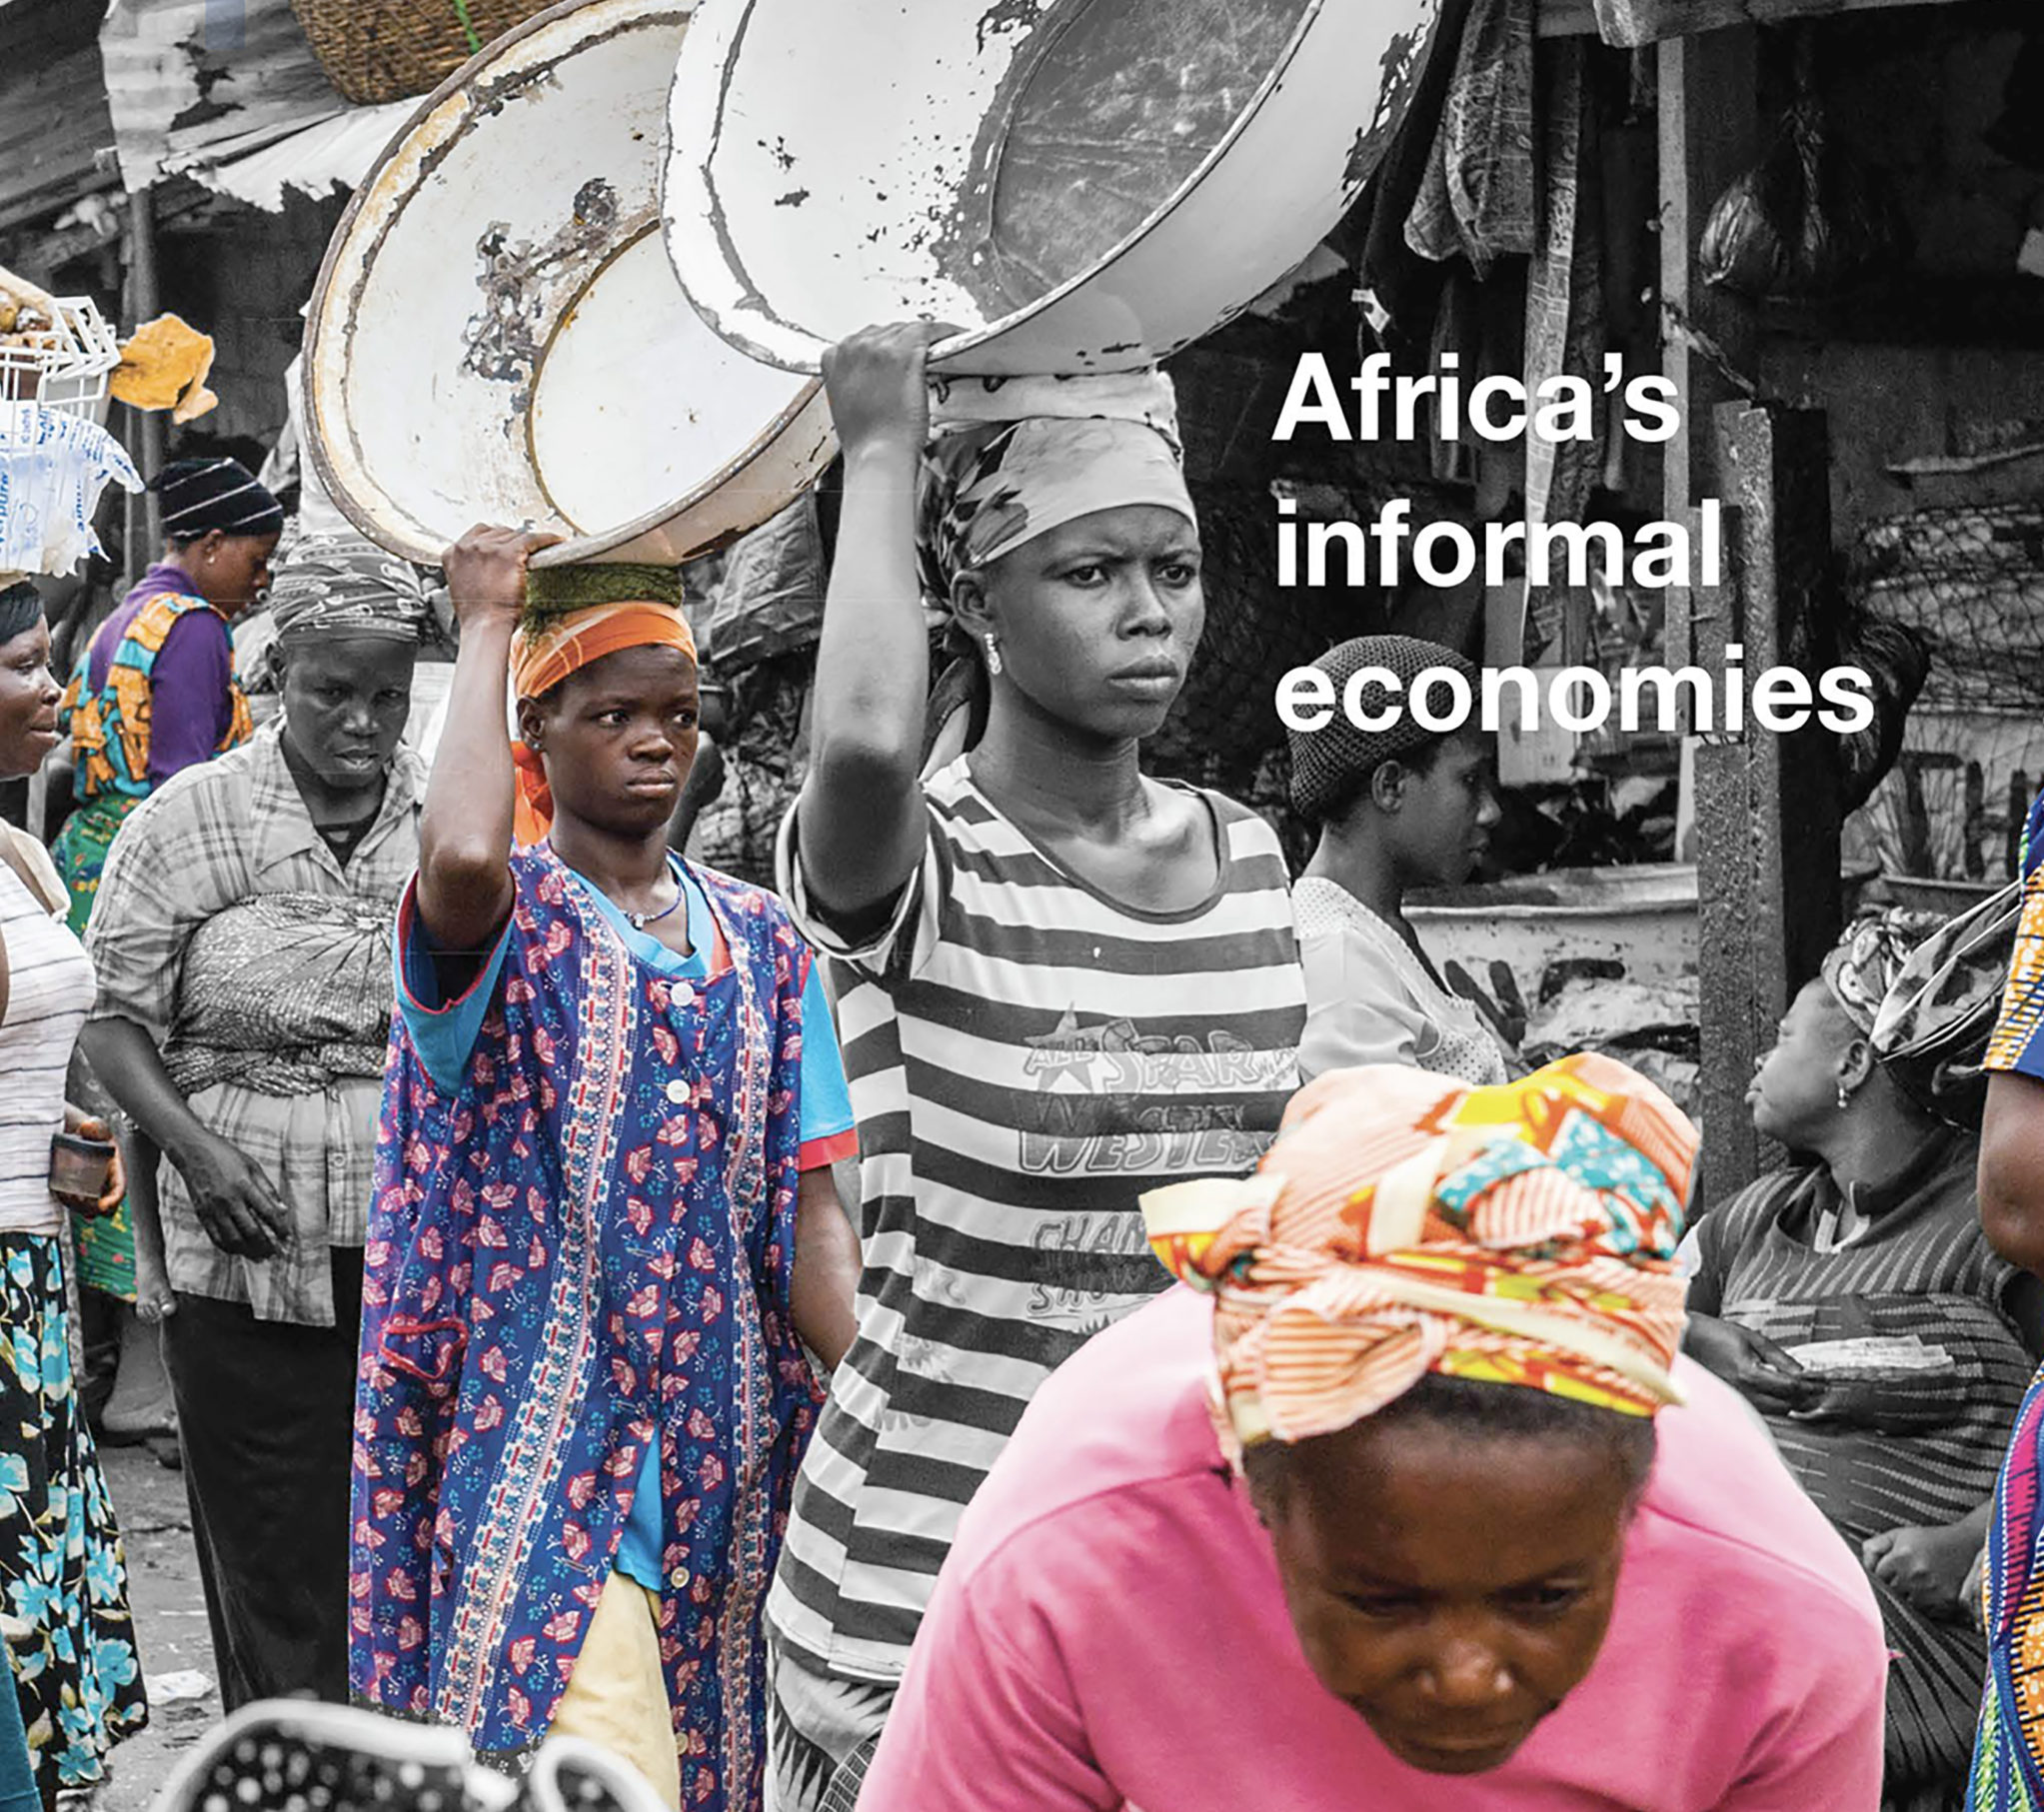 EDITORIAL: The lifeboat of informality